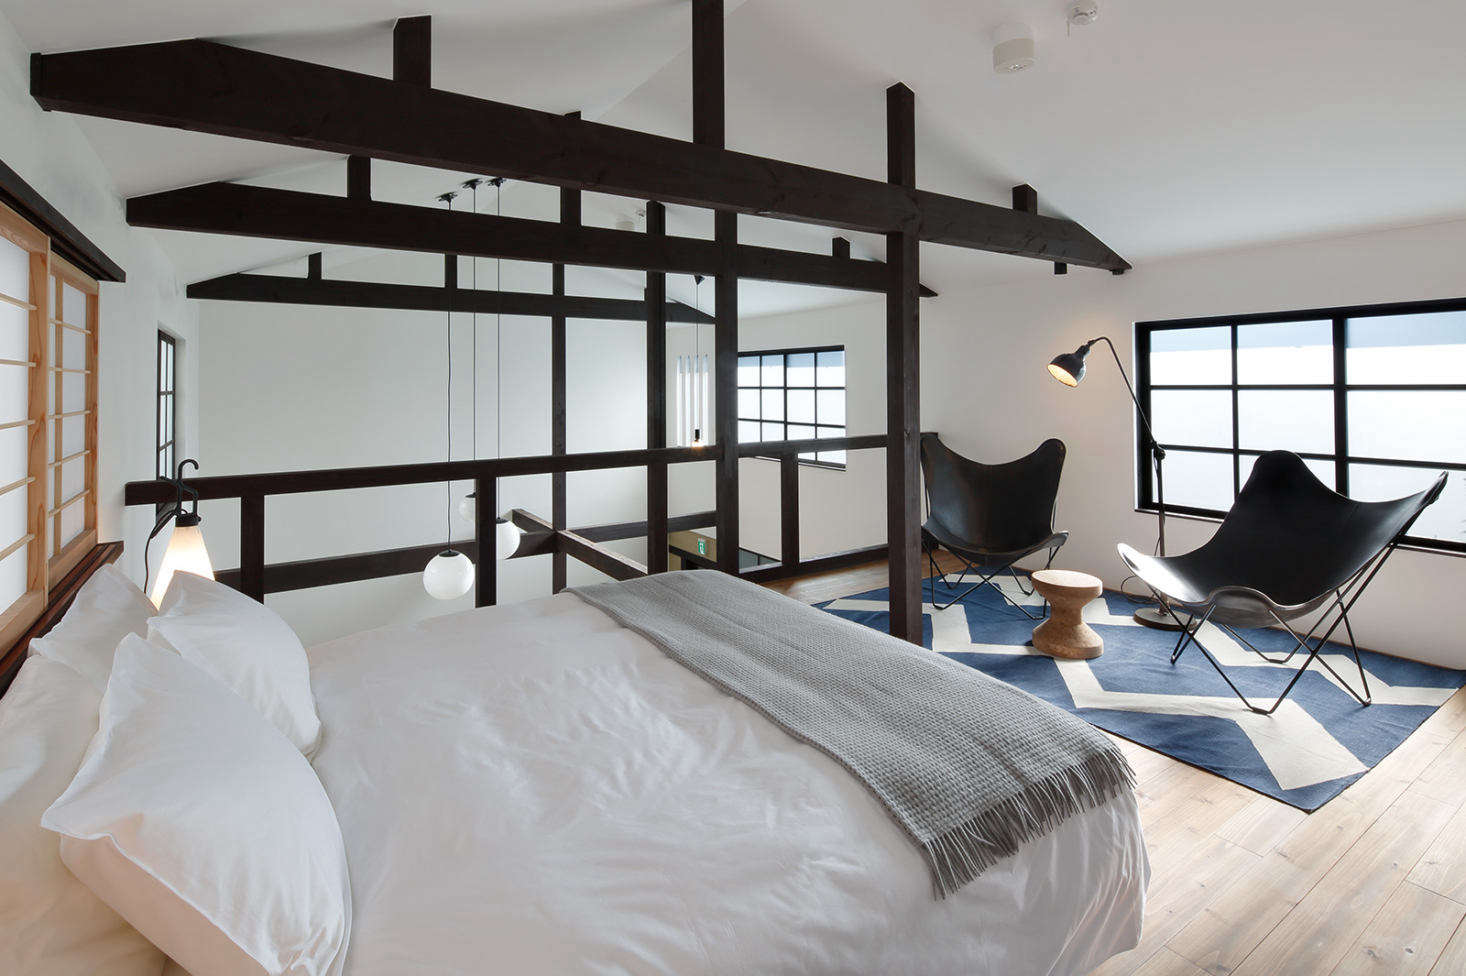 The houses are rented individually. Go-Go (no. 5), which accommodates two, has a modern, double-height interior and a rarity in Japan: a king-size bed.